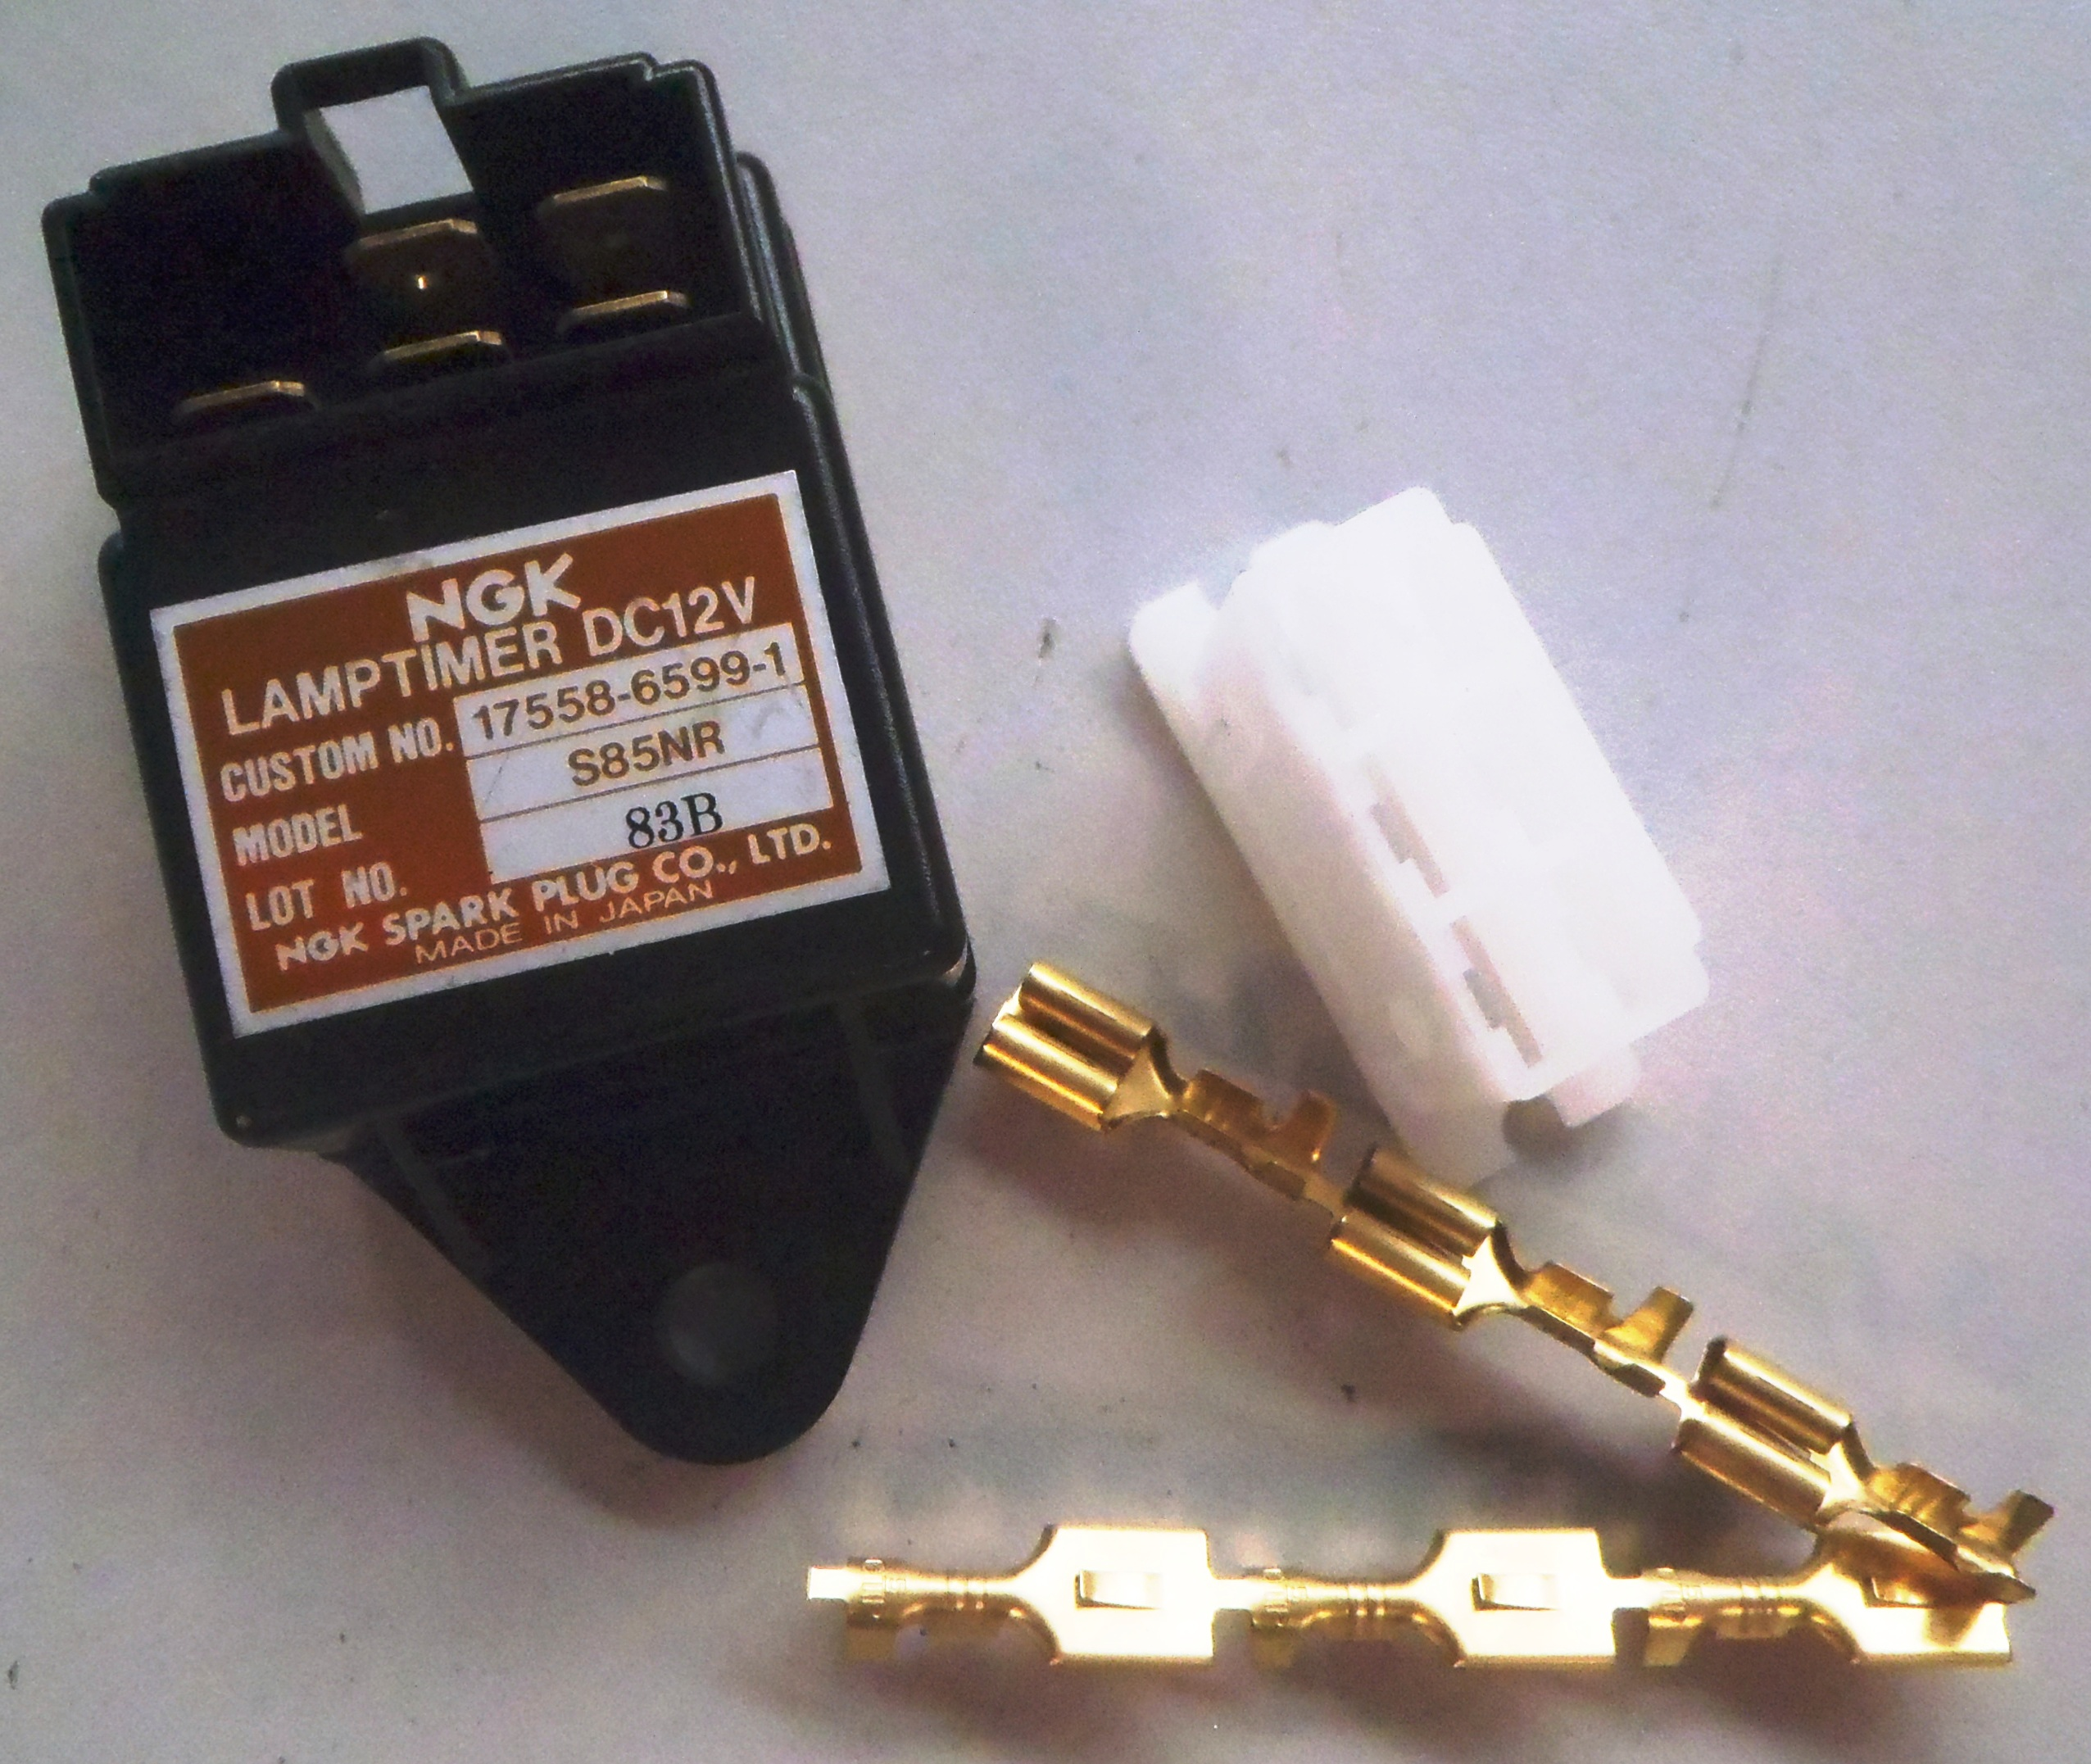 ngk lamp timer related keywords suggestions ngk lamp timer ngk lamptimer 12v zeitrelais 17558 65991 s85nr 6599 1